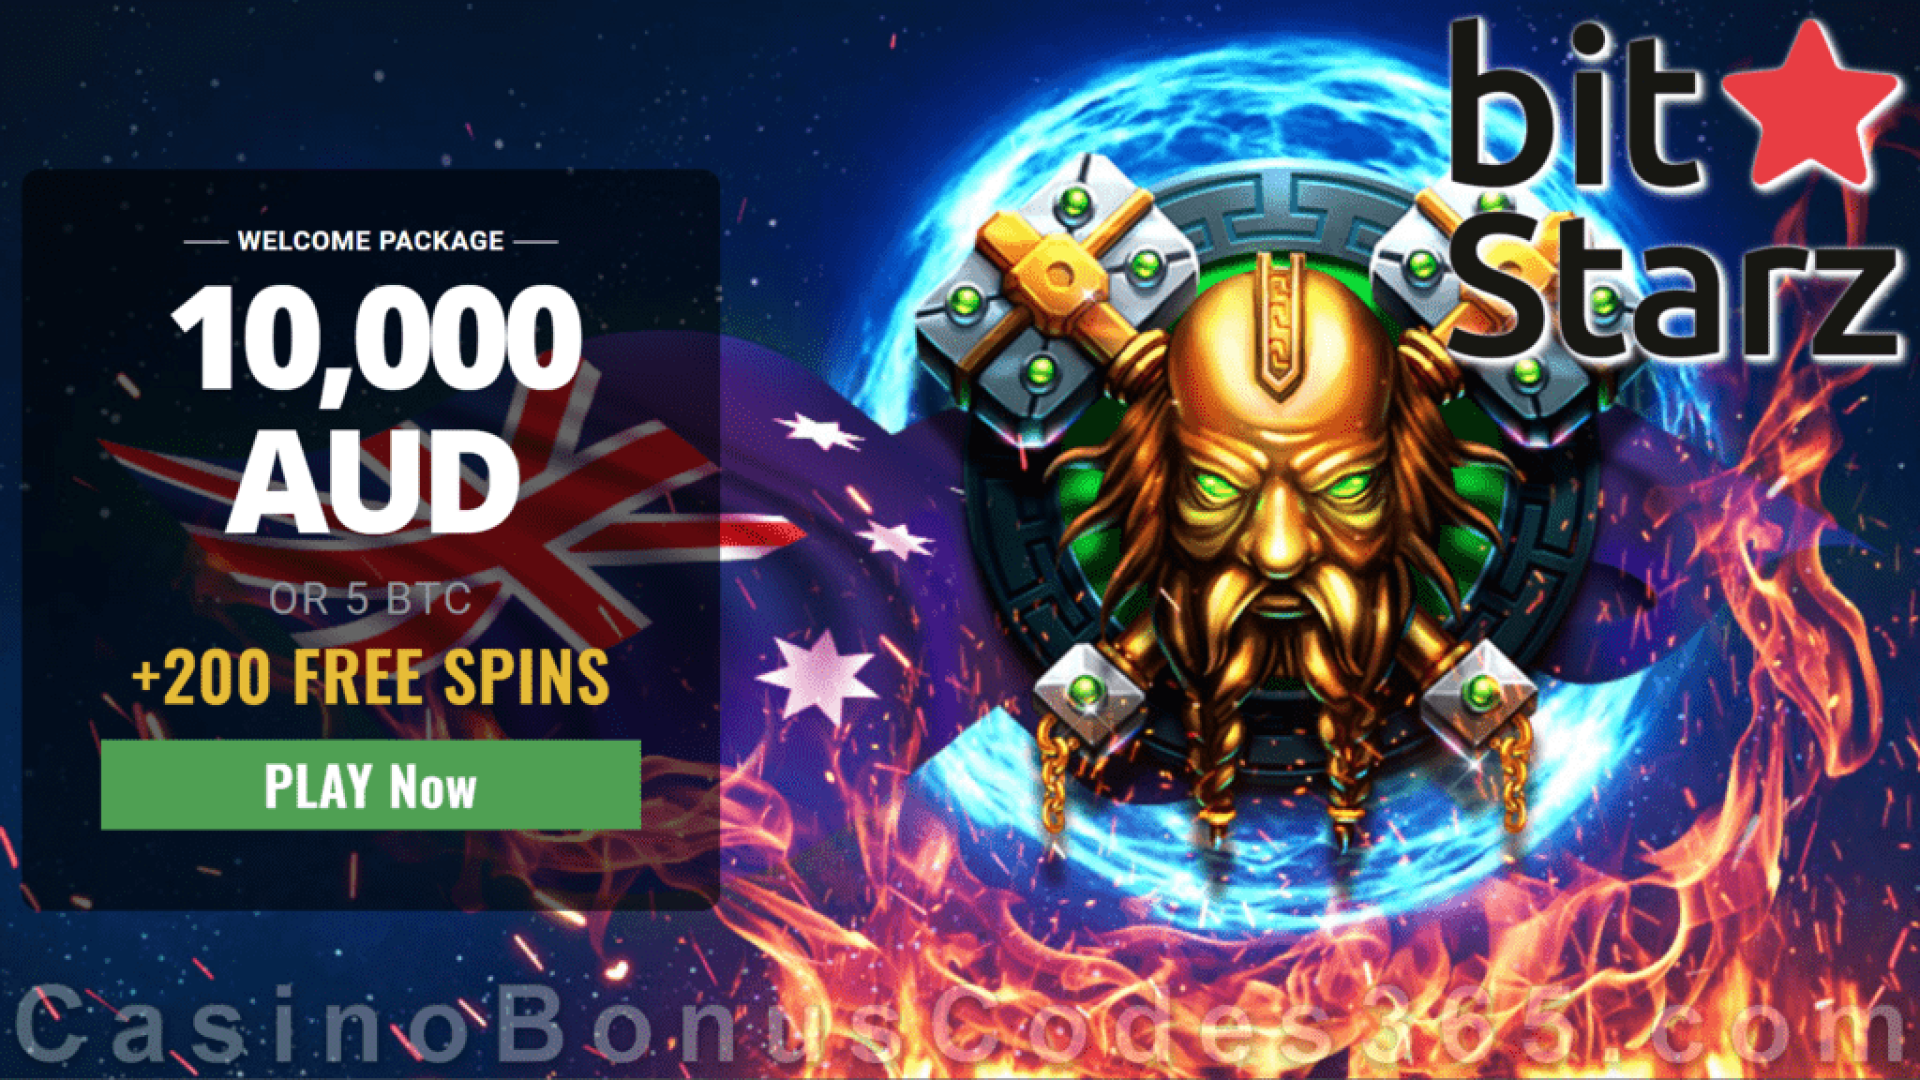 Bitstarz Casino A$10000 plus 200 FREE Spins Welcome Deal for Australian Players BGAMING Fire Lightning